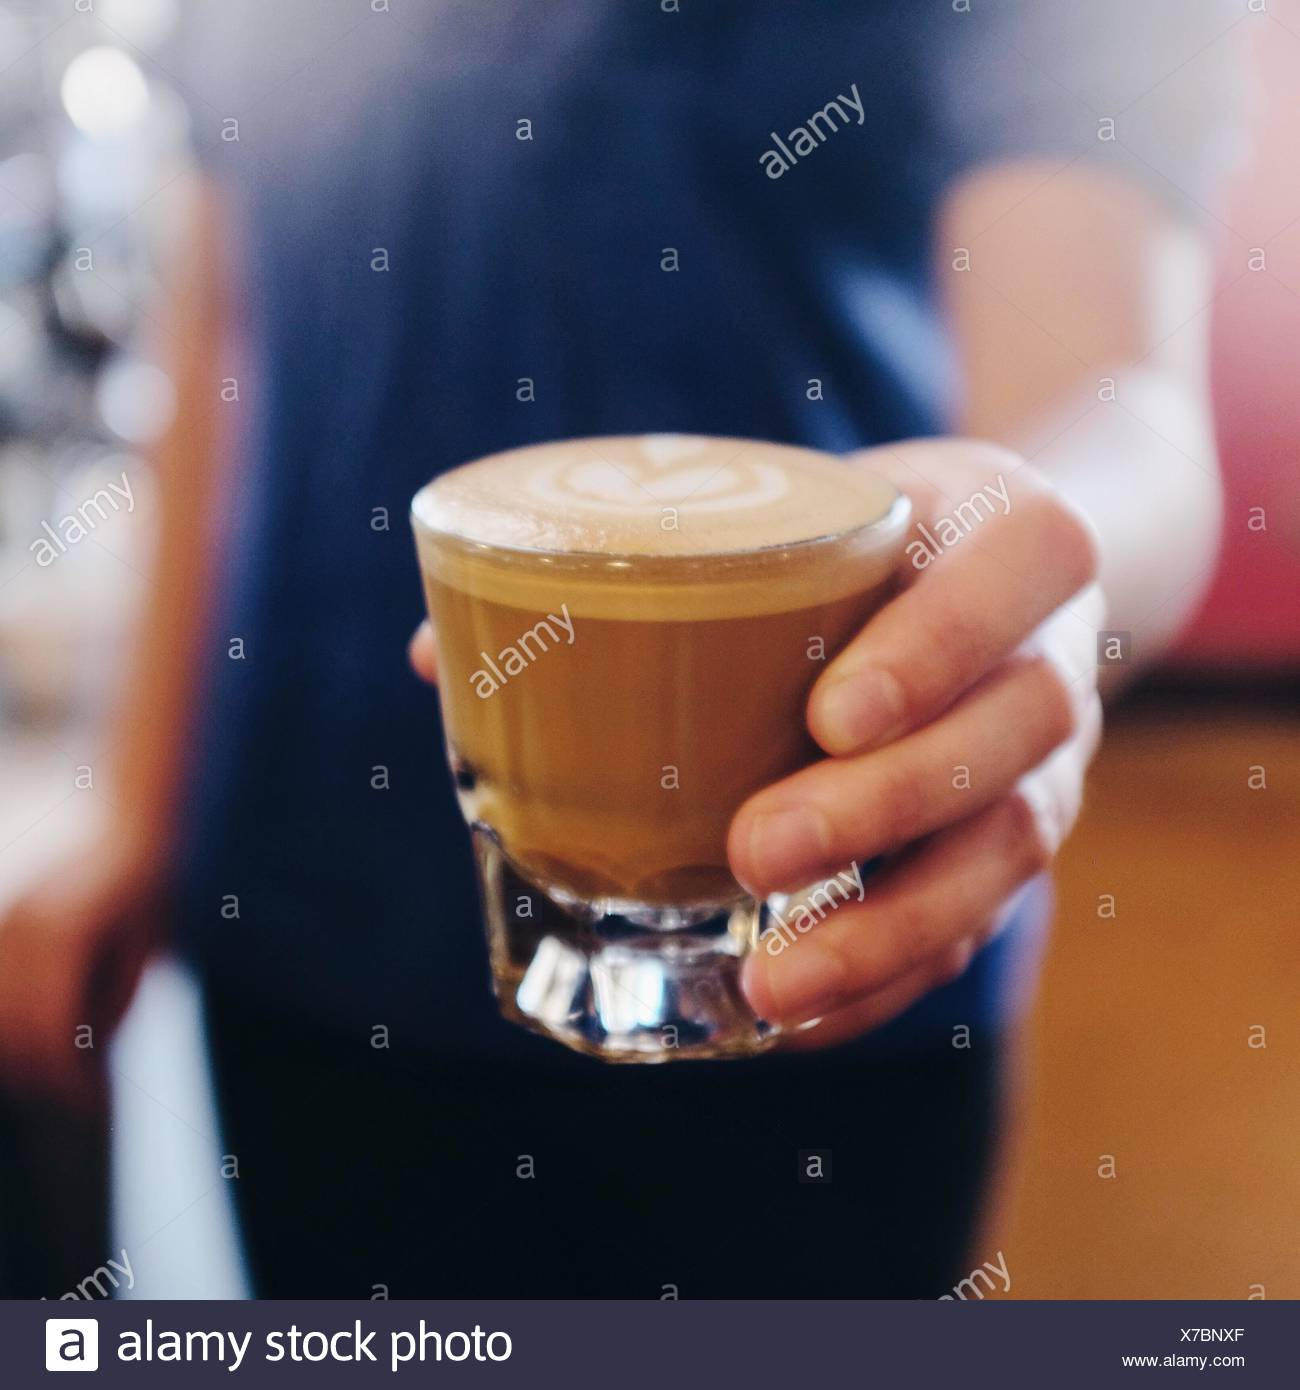 Handled the cortado with care. - Stock Image